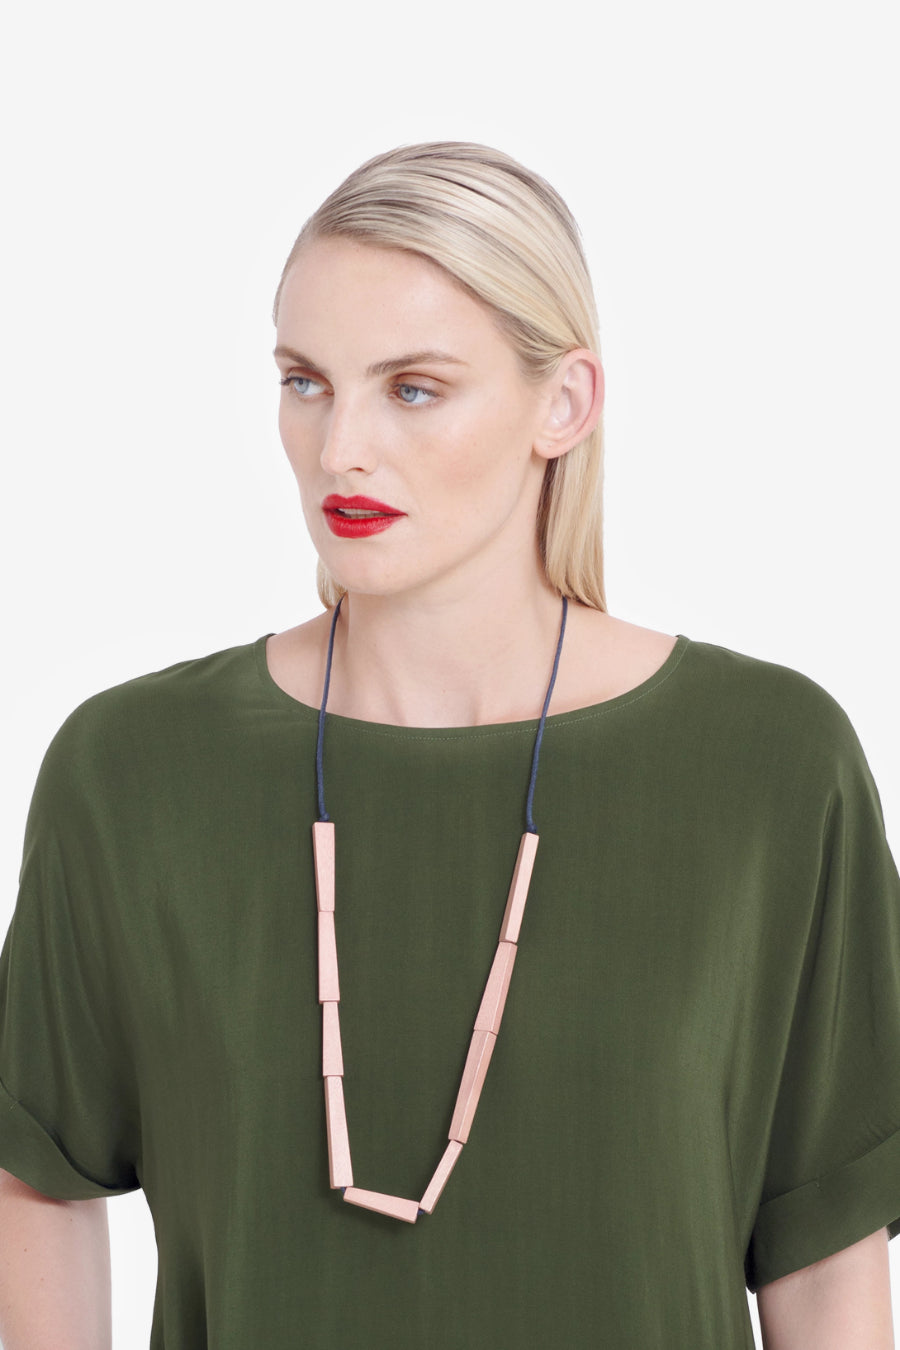 Elk Vakern Half Necklace N2405 Apricot/Navy